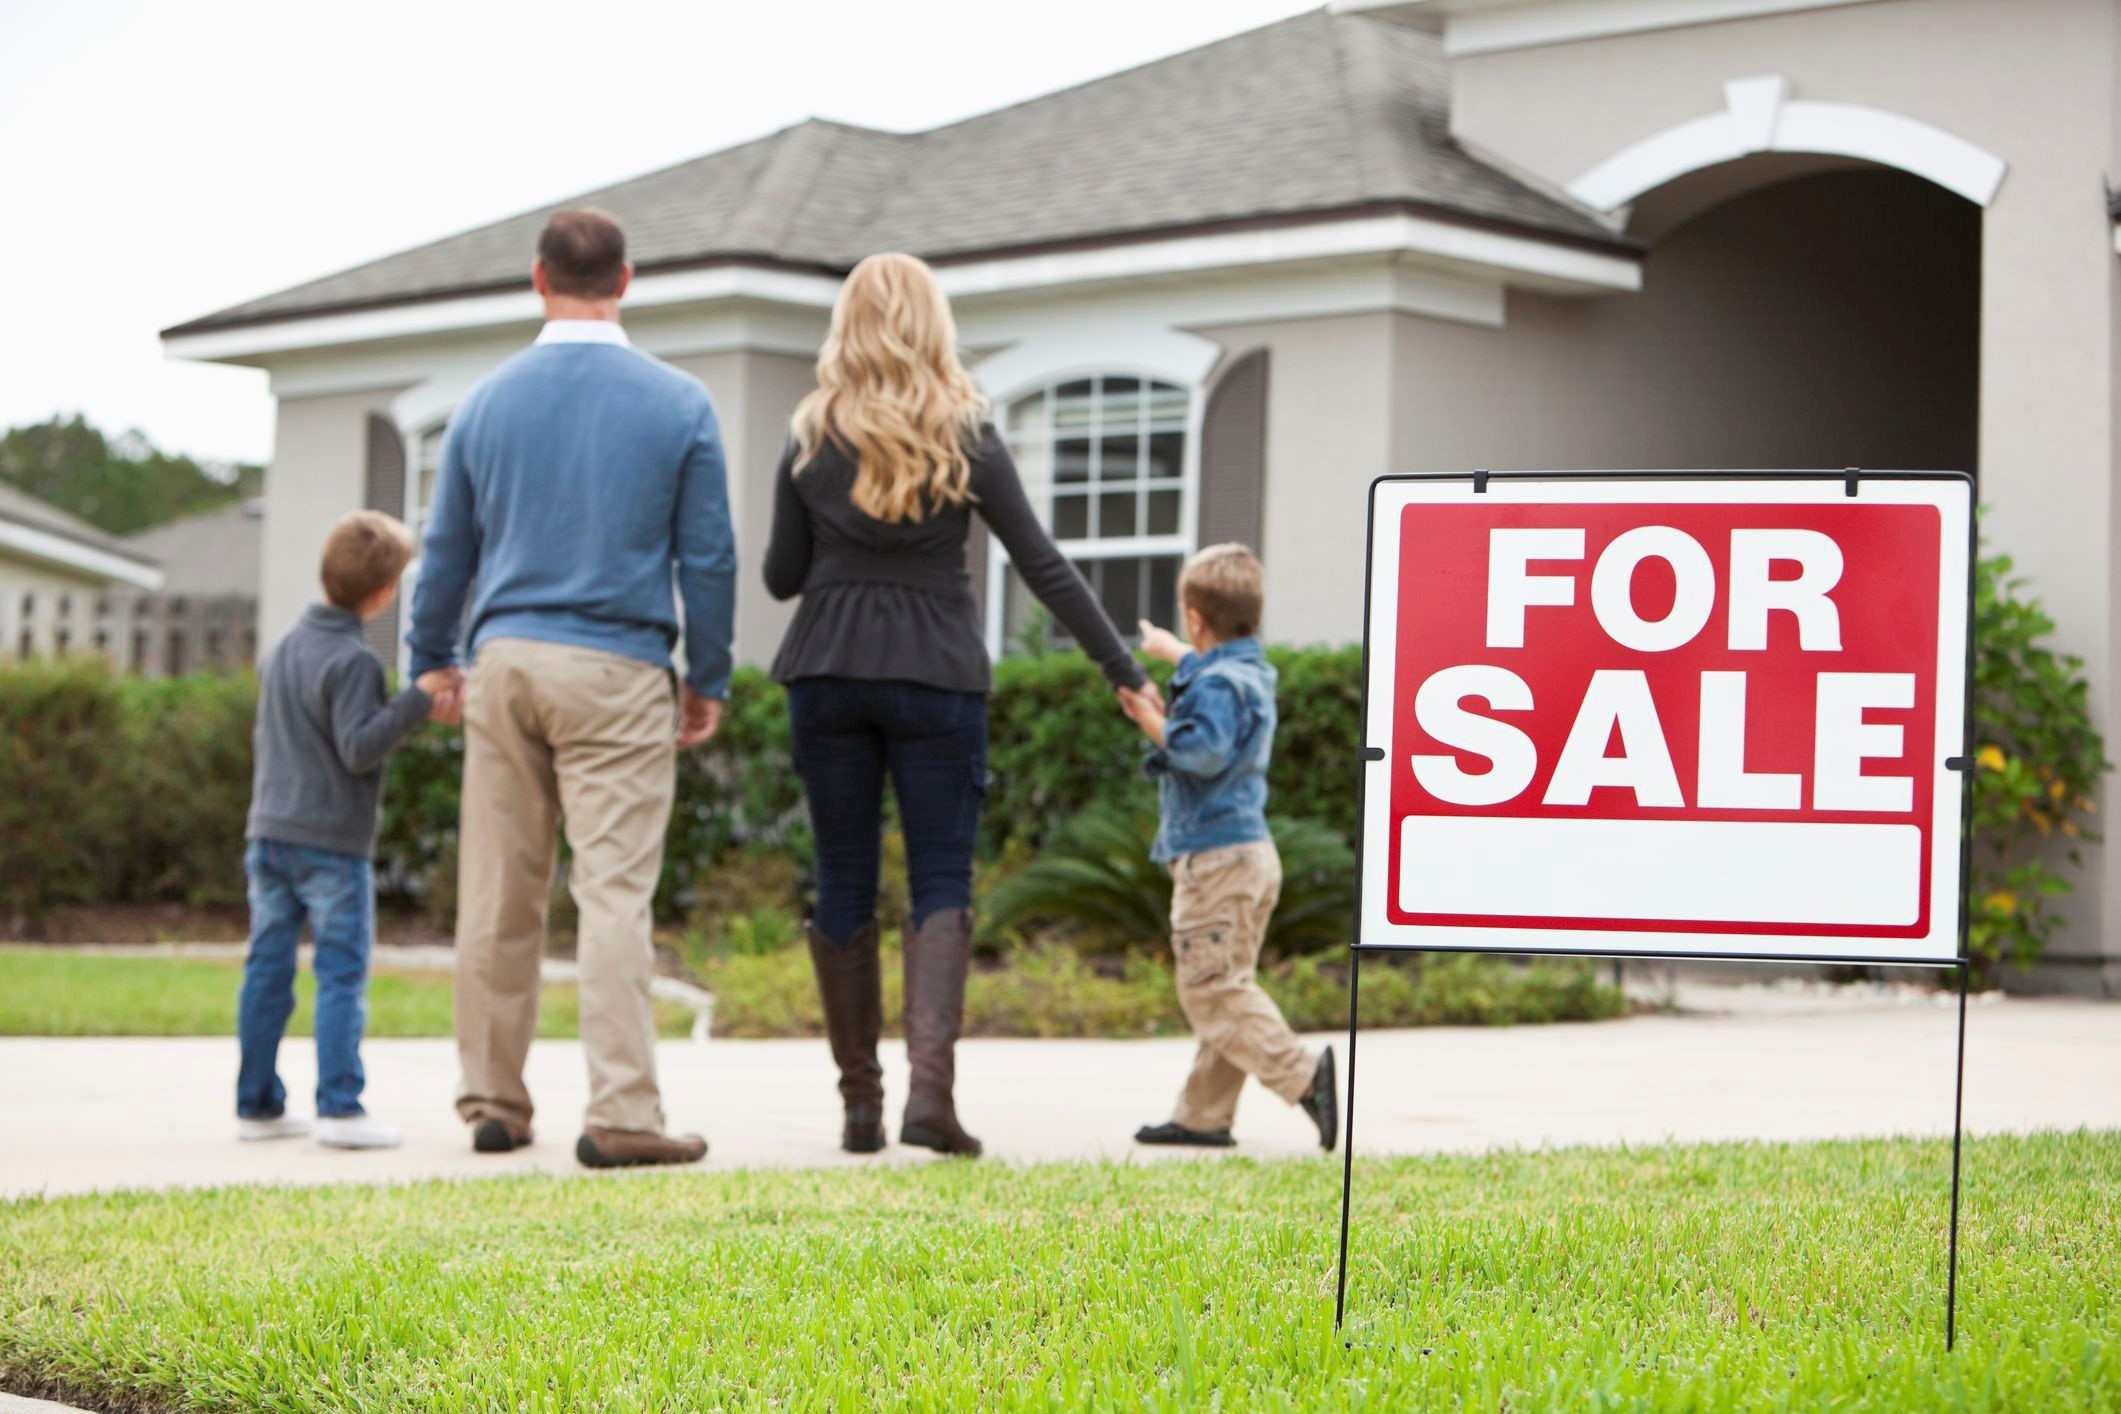 Understand-What-the-Buyers-Want